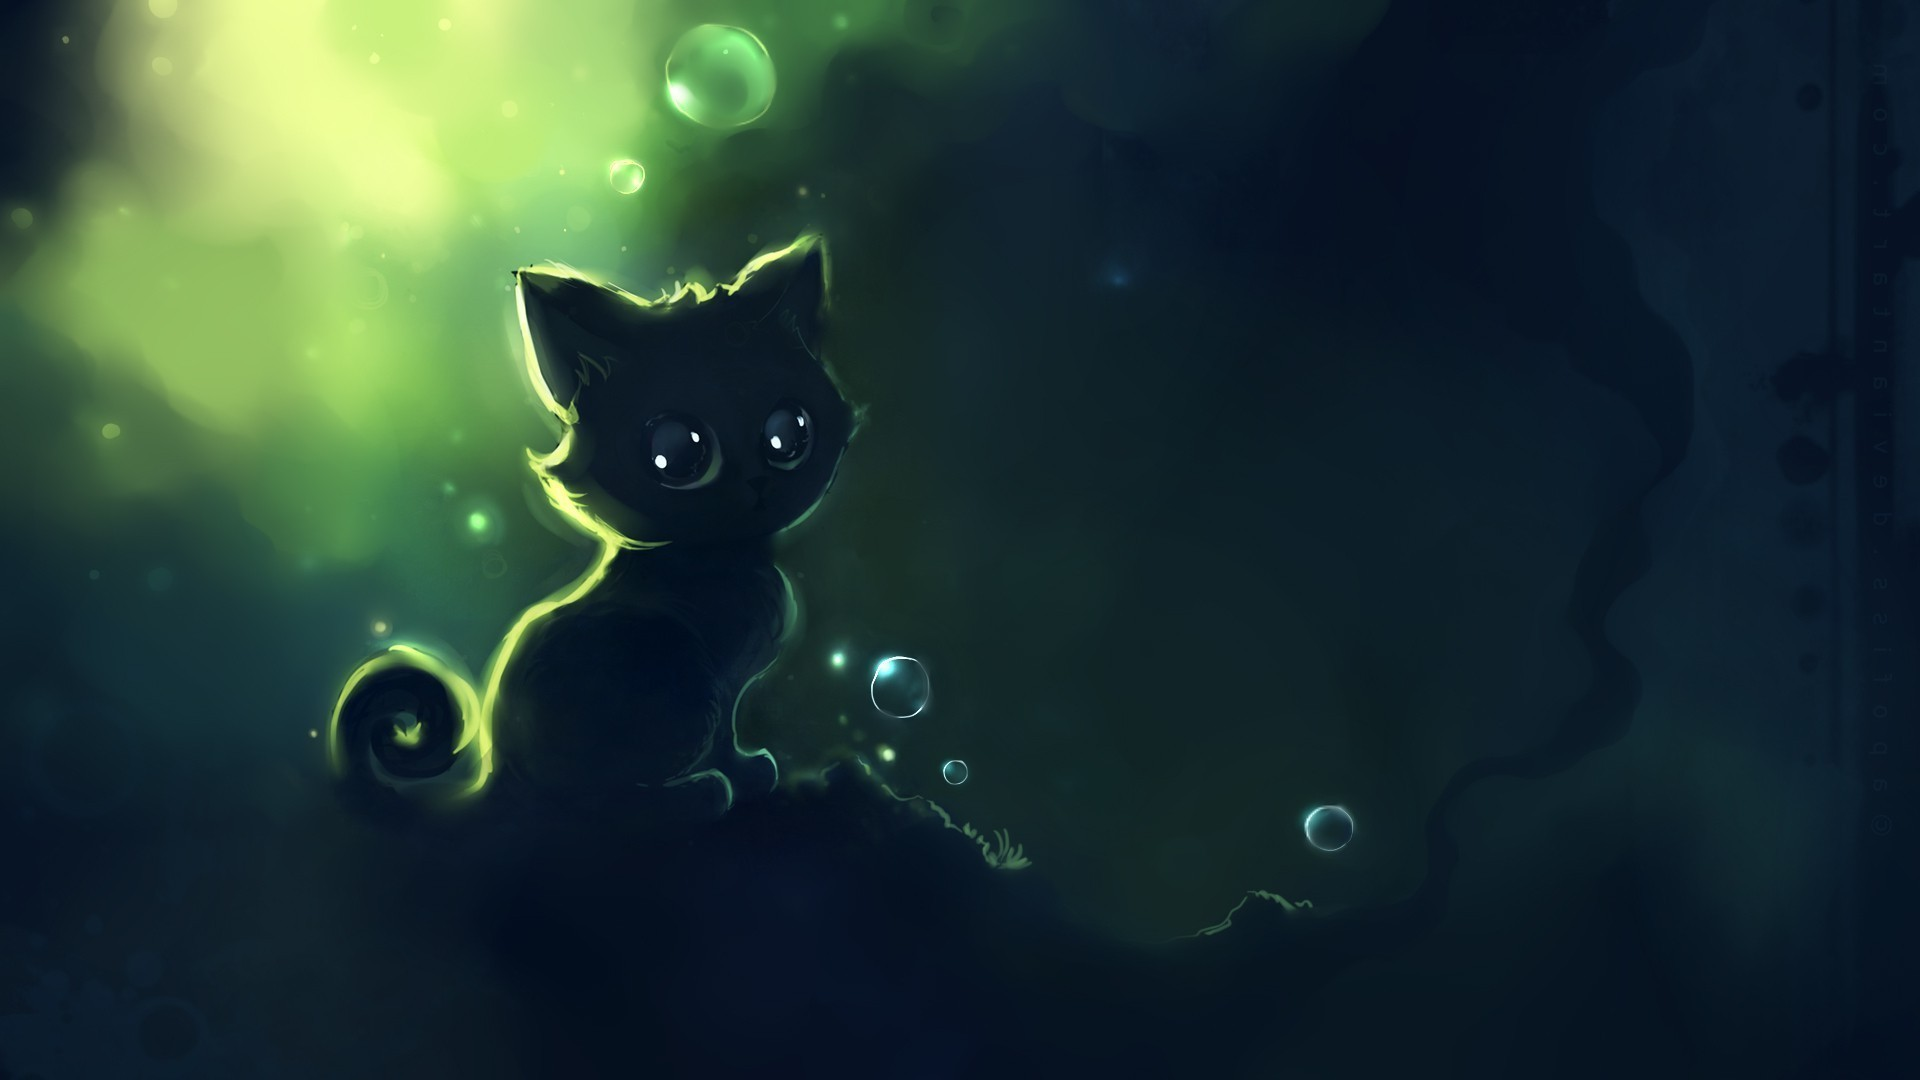 Drawn Cat Wallpapers Posted By Michelle Peltier